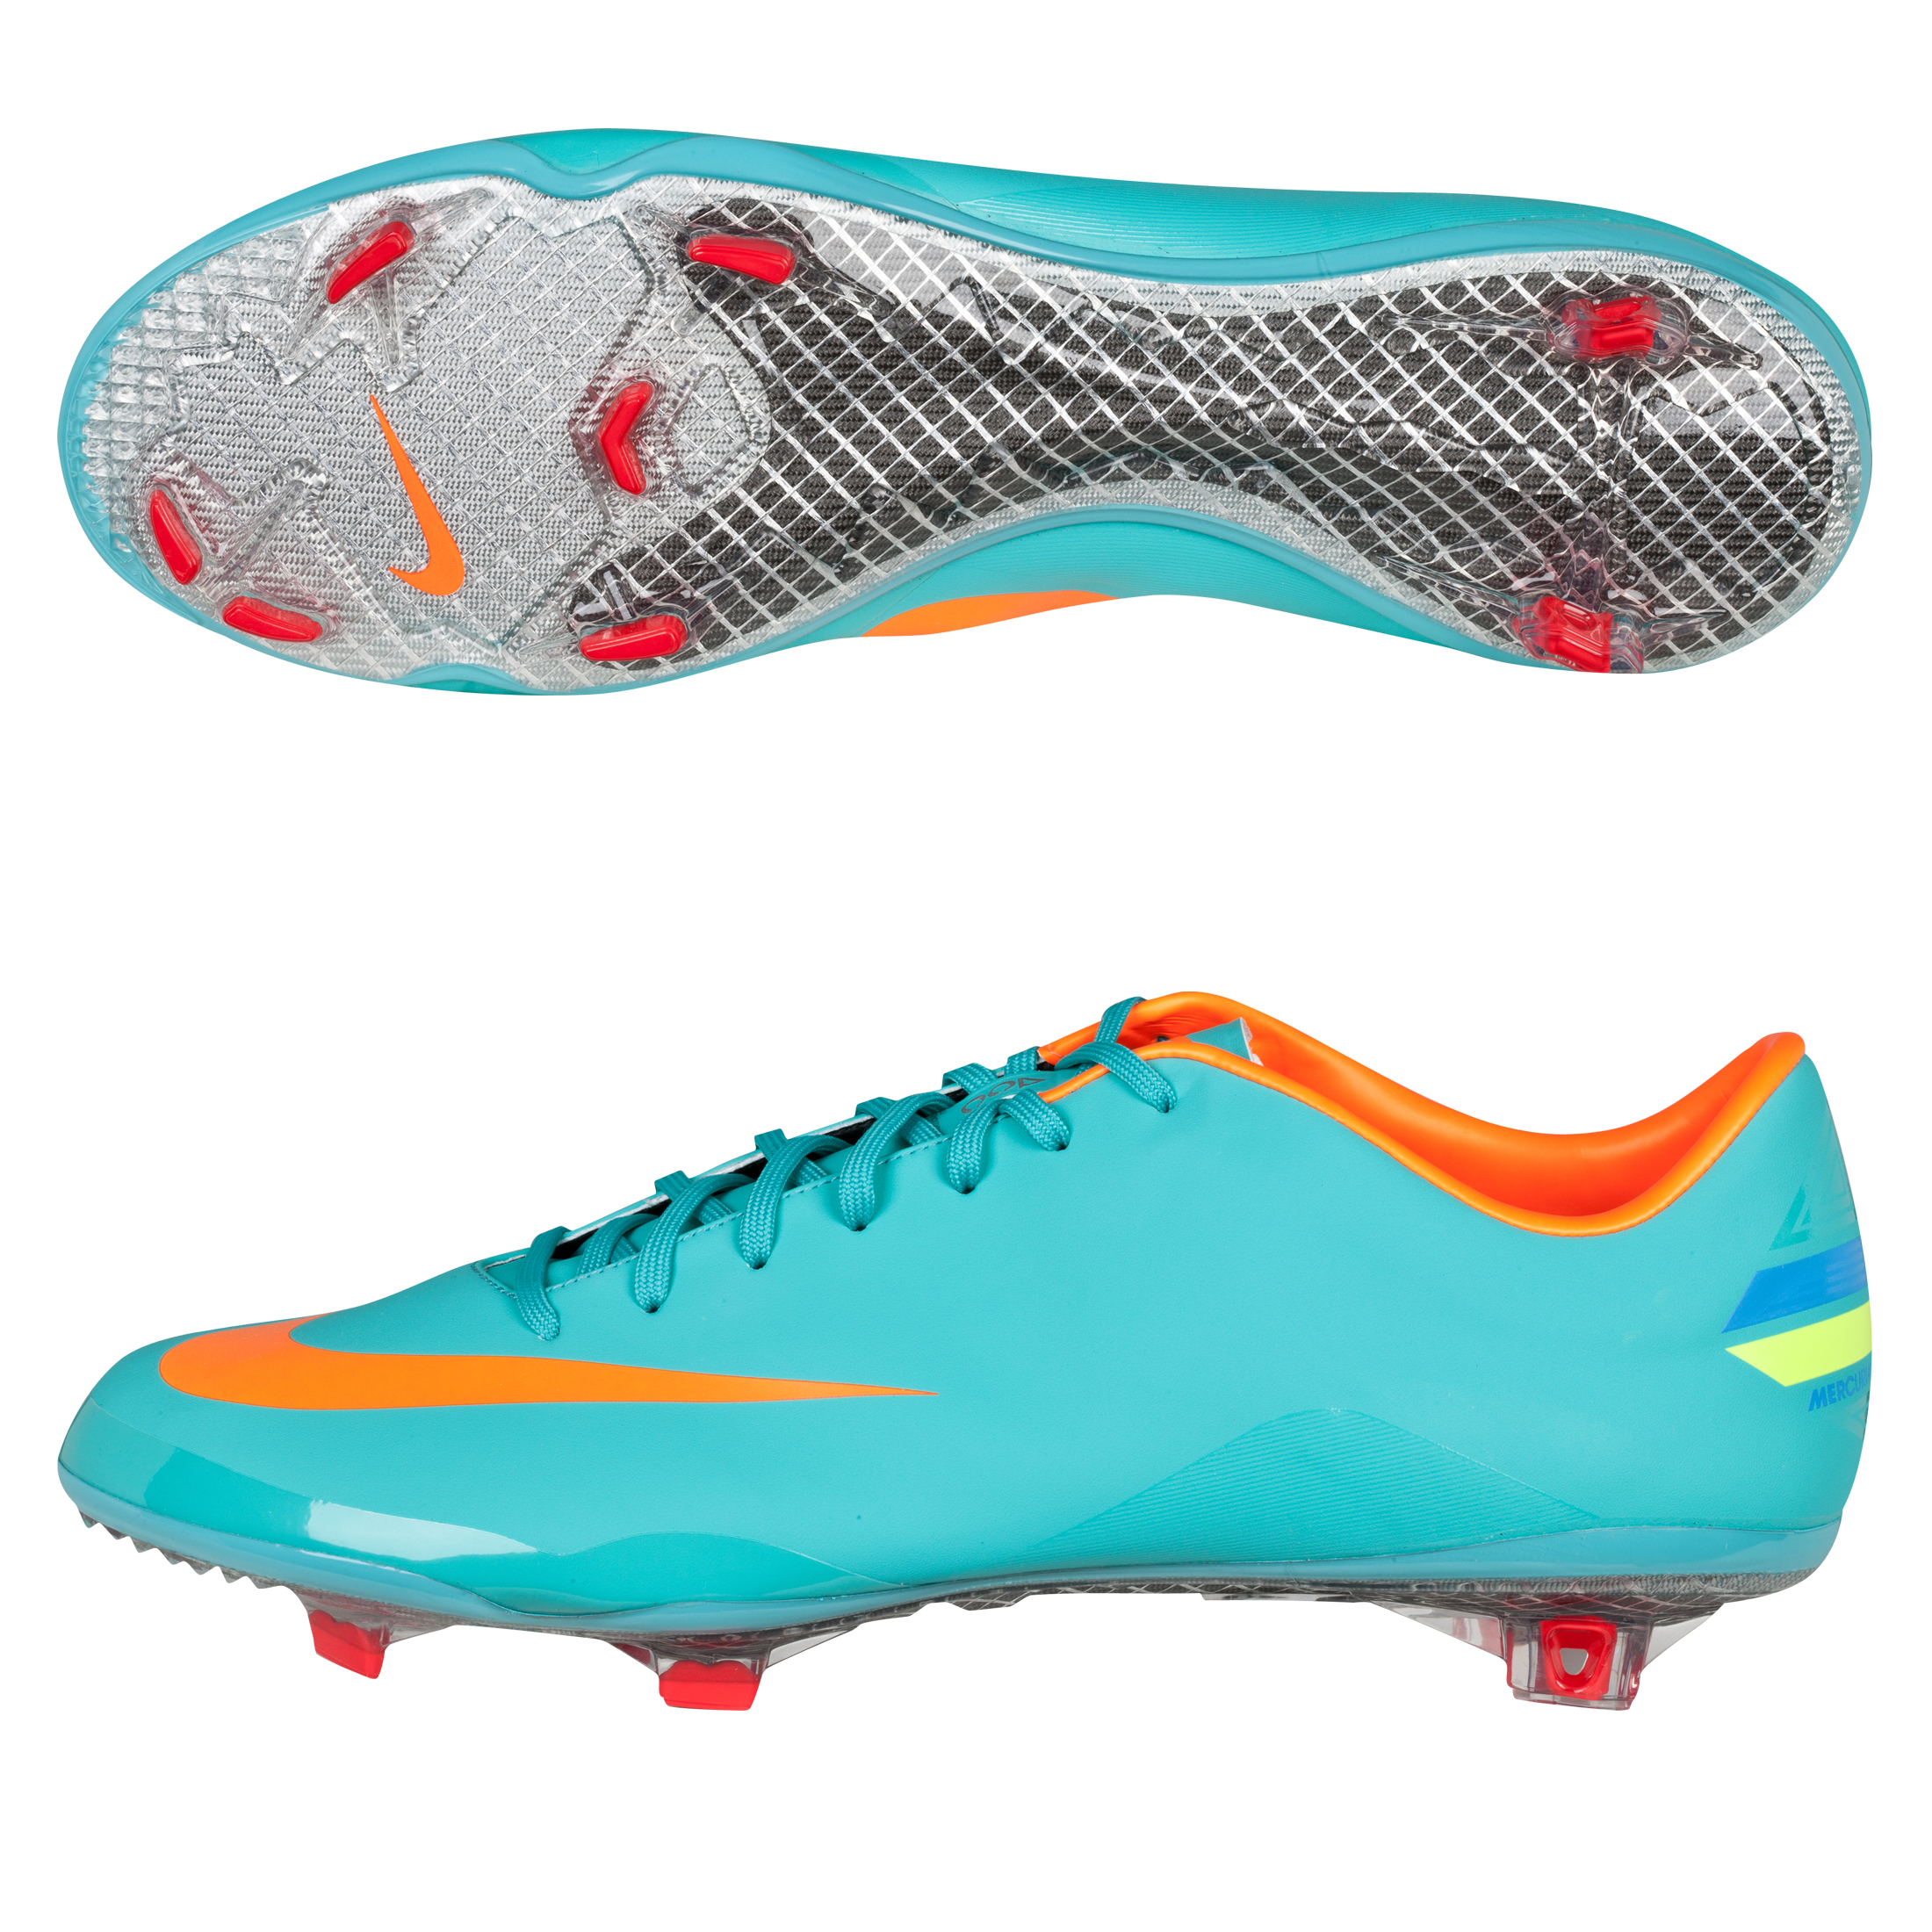 Mercurial Vapor VIII FG Retro/Total Orange/Chilling Red